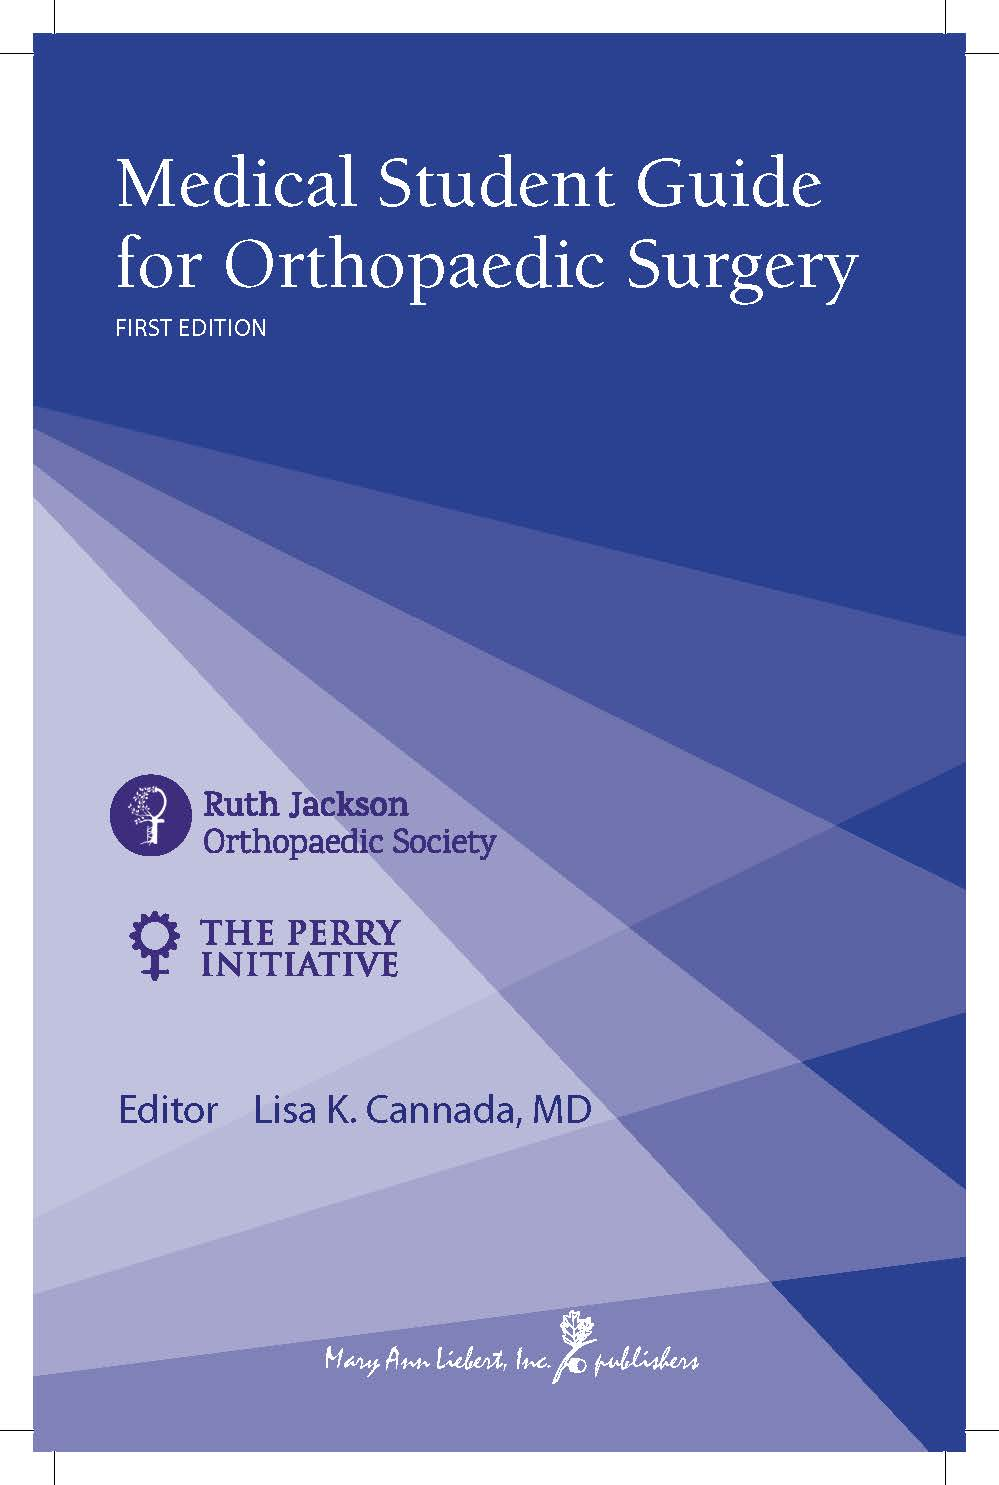 Medical Student Guide for Orthopaedic Surgery Image